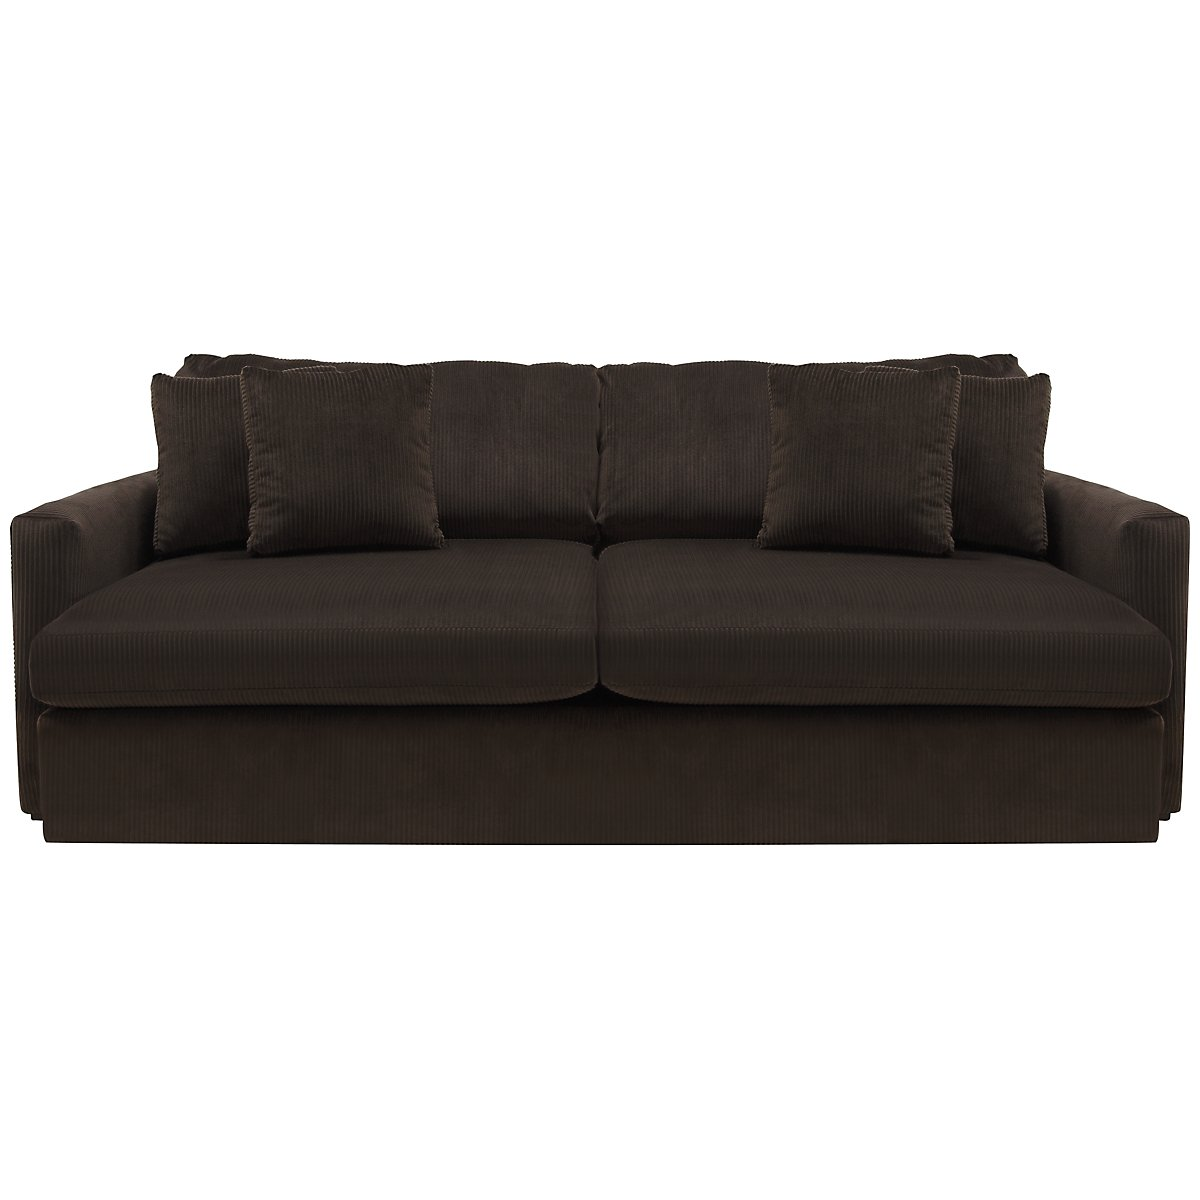 Brown Suede Couch Brown Suede Sofa Set Brown Suede Sofa For Sale ...